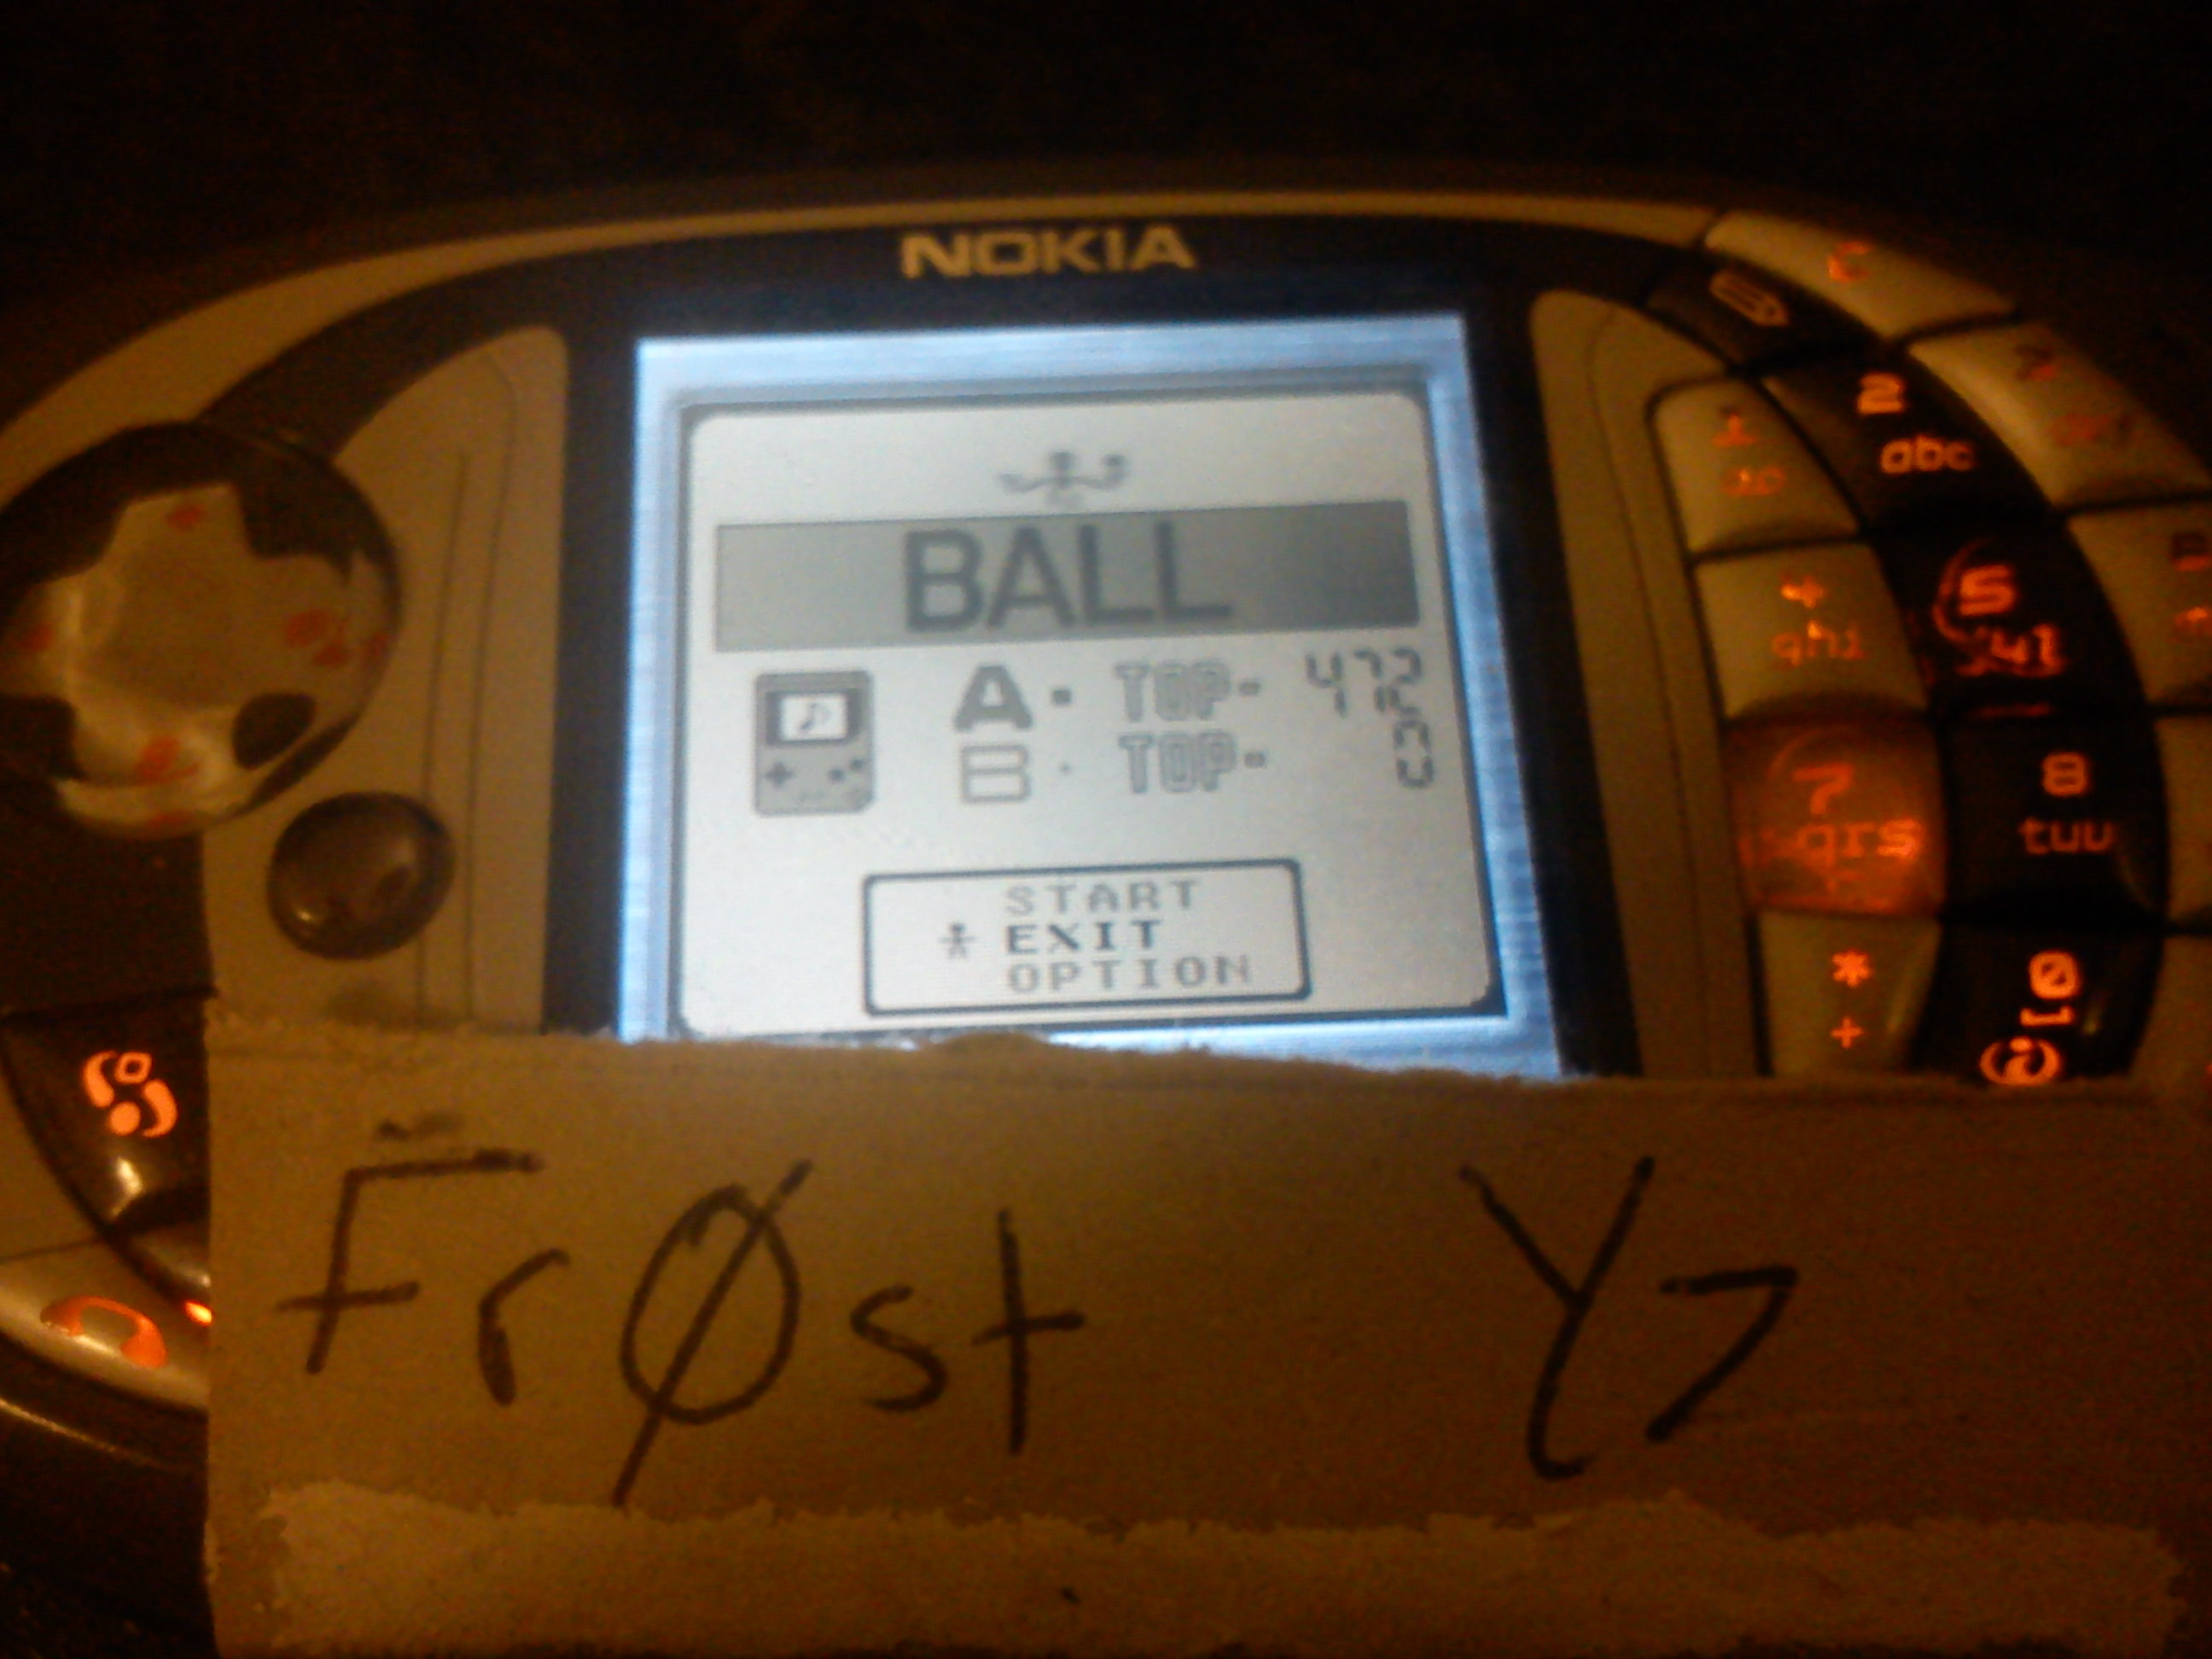 Fr0st: Gameboy Gallery: Ball [Game A] (Game Boy Emulated) 472 points on 2014-07-14 11:19:33